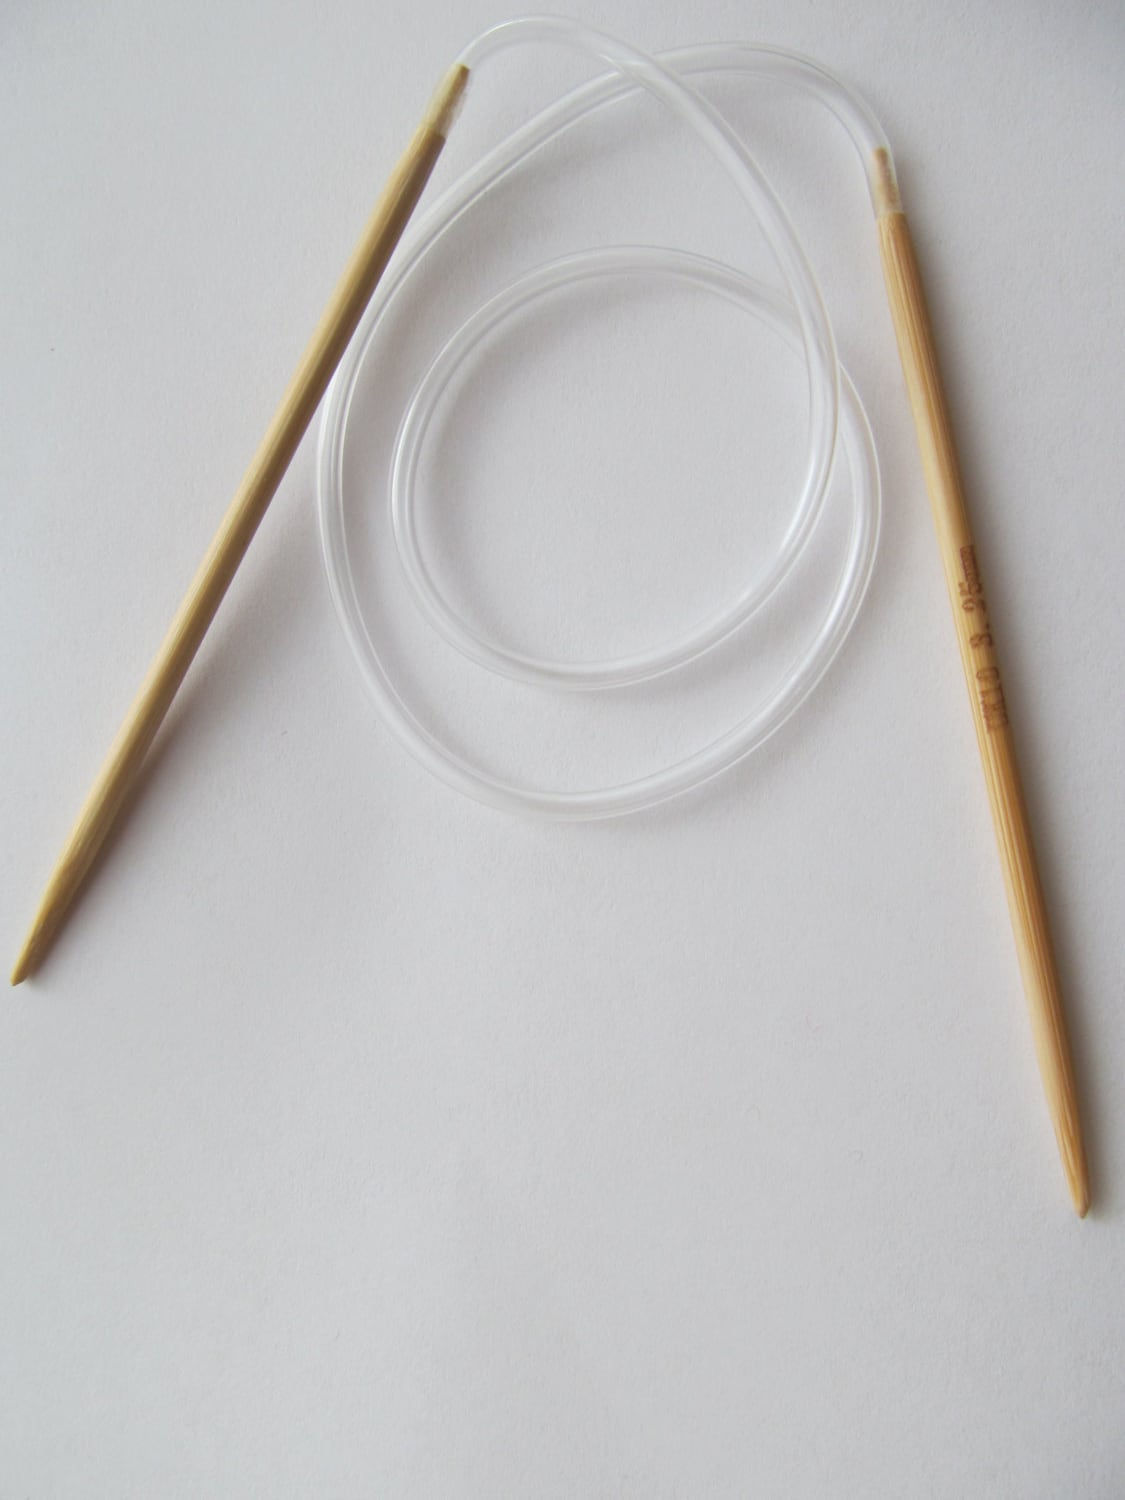 Knitting Needles Mm To Inches : Inch size knitting needles circular mm bamboo by